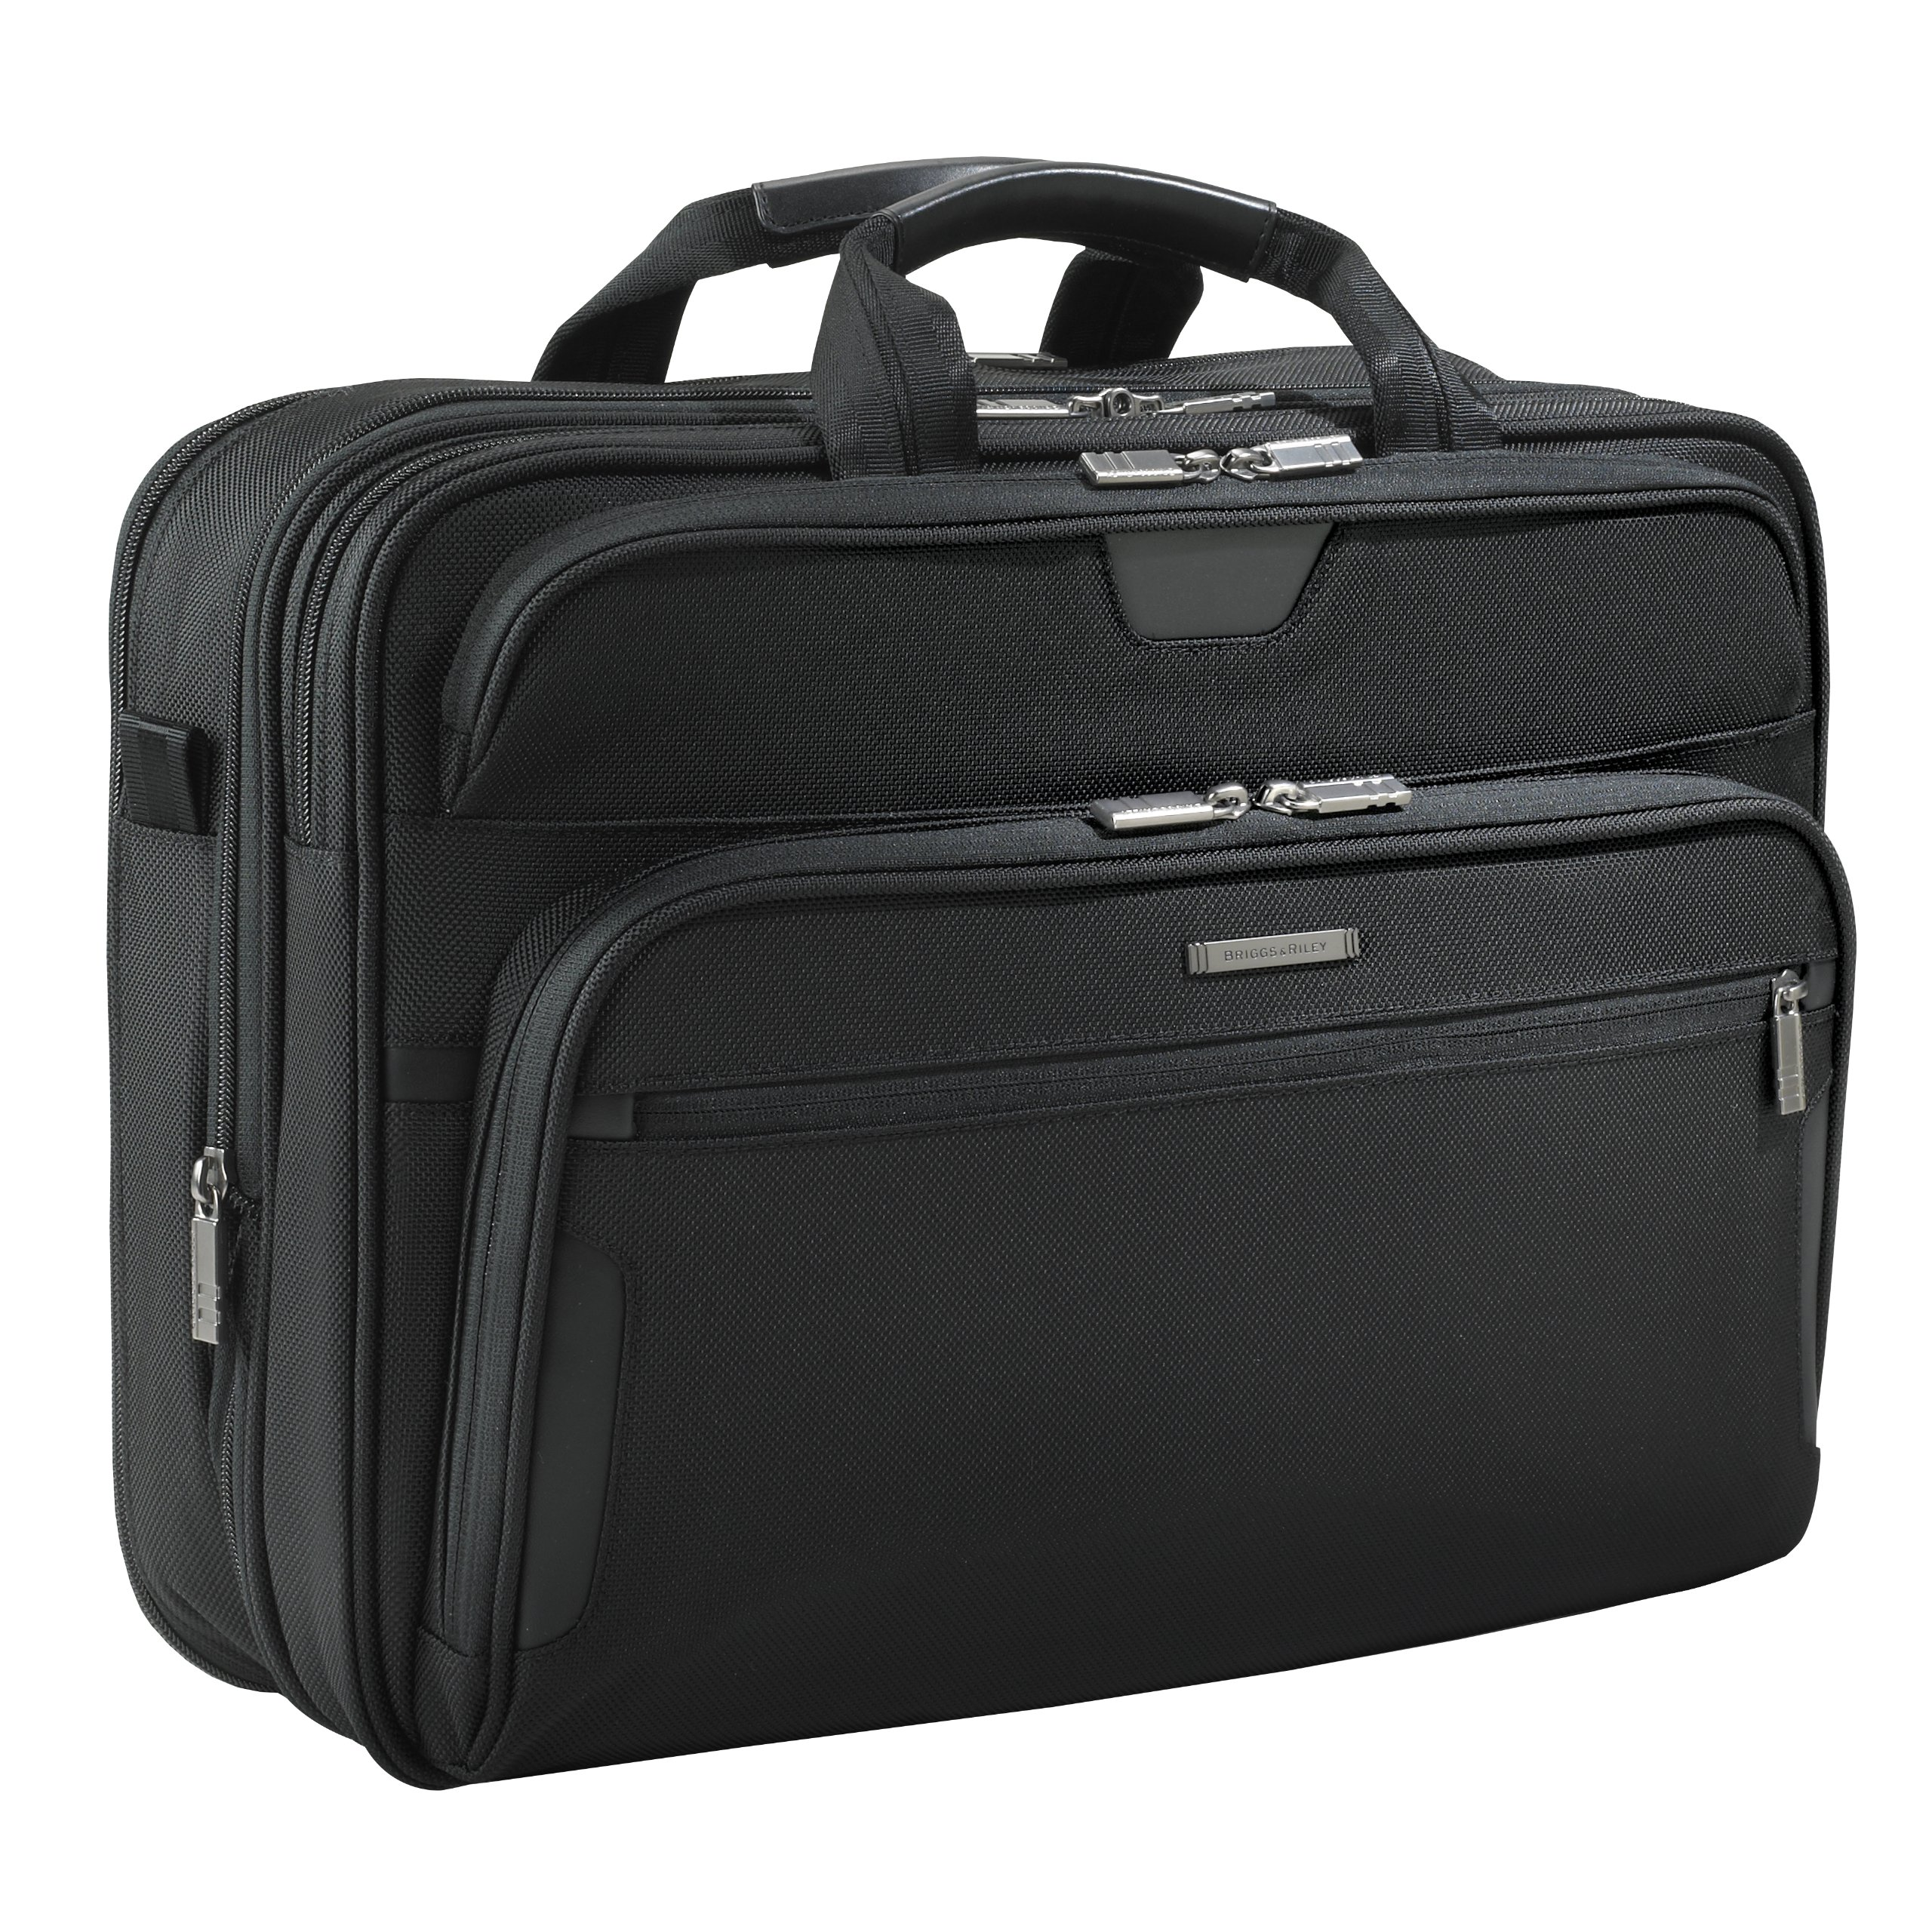 Briggs & Riley @ Work Luggage Large Expandable Brief, Black by Briggs & Riley (Image #1)